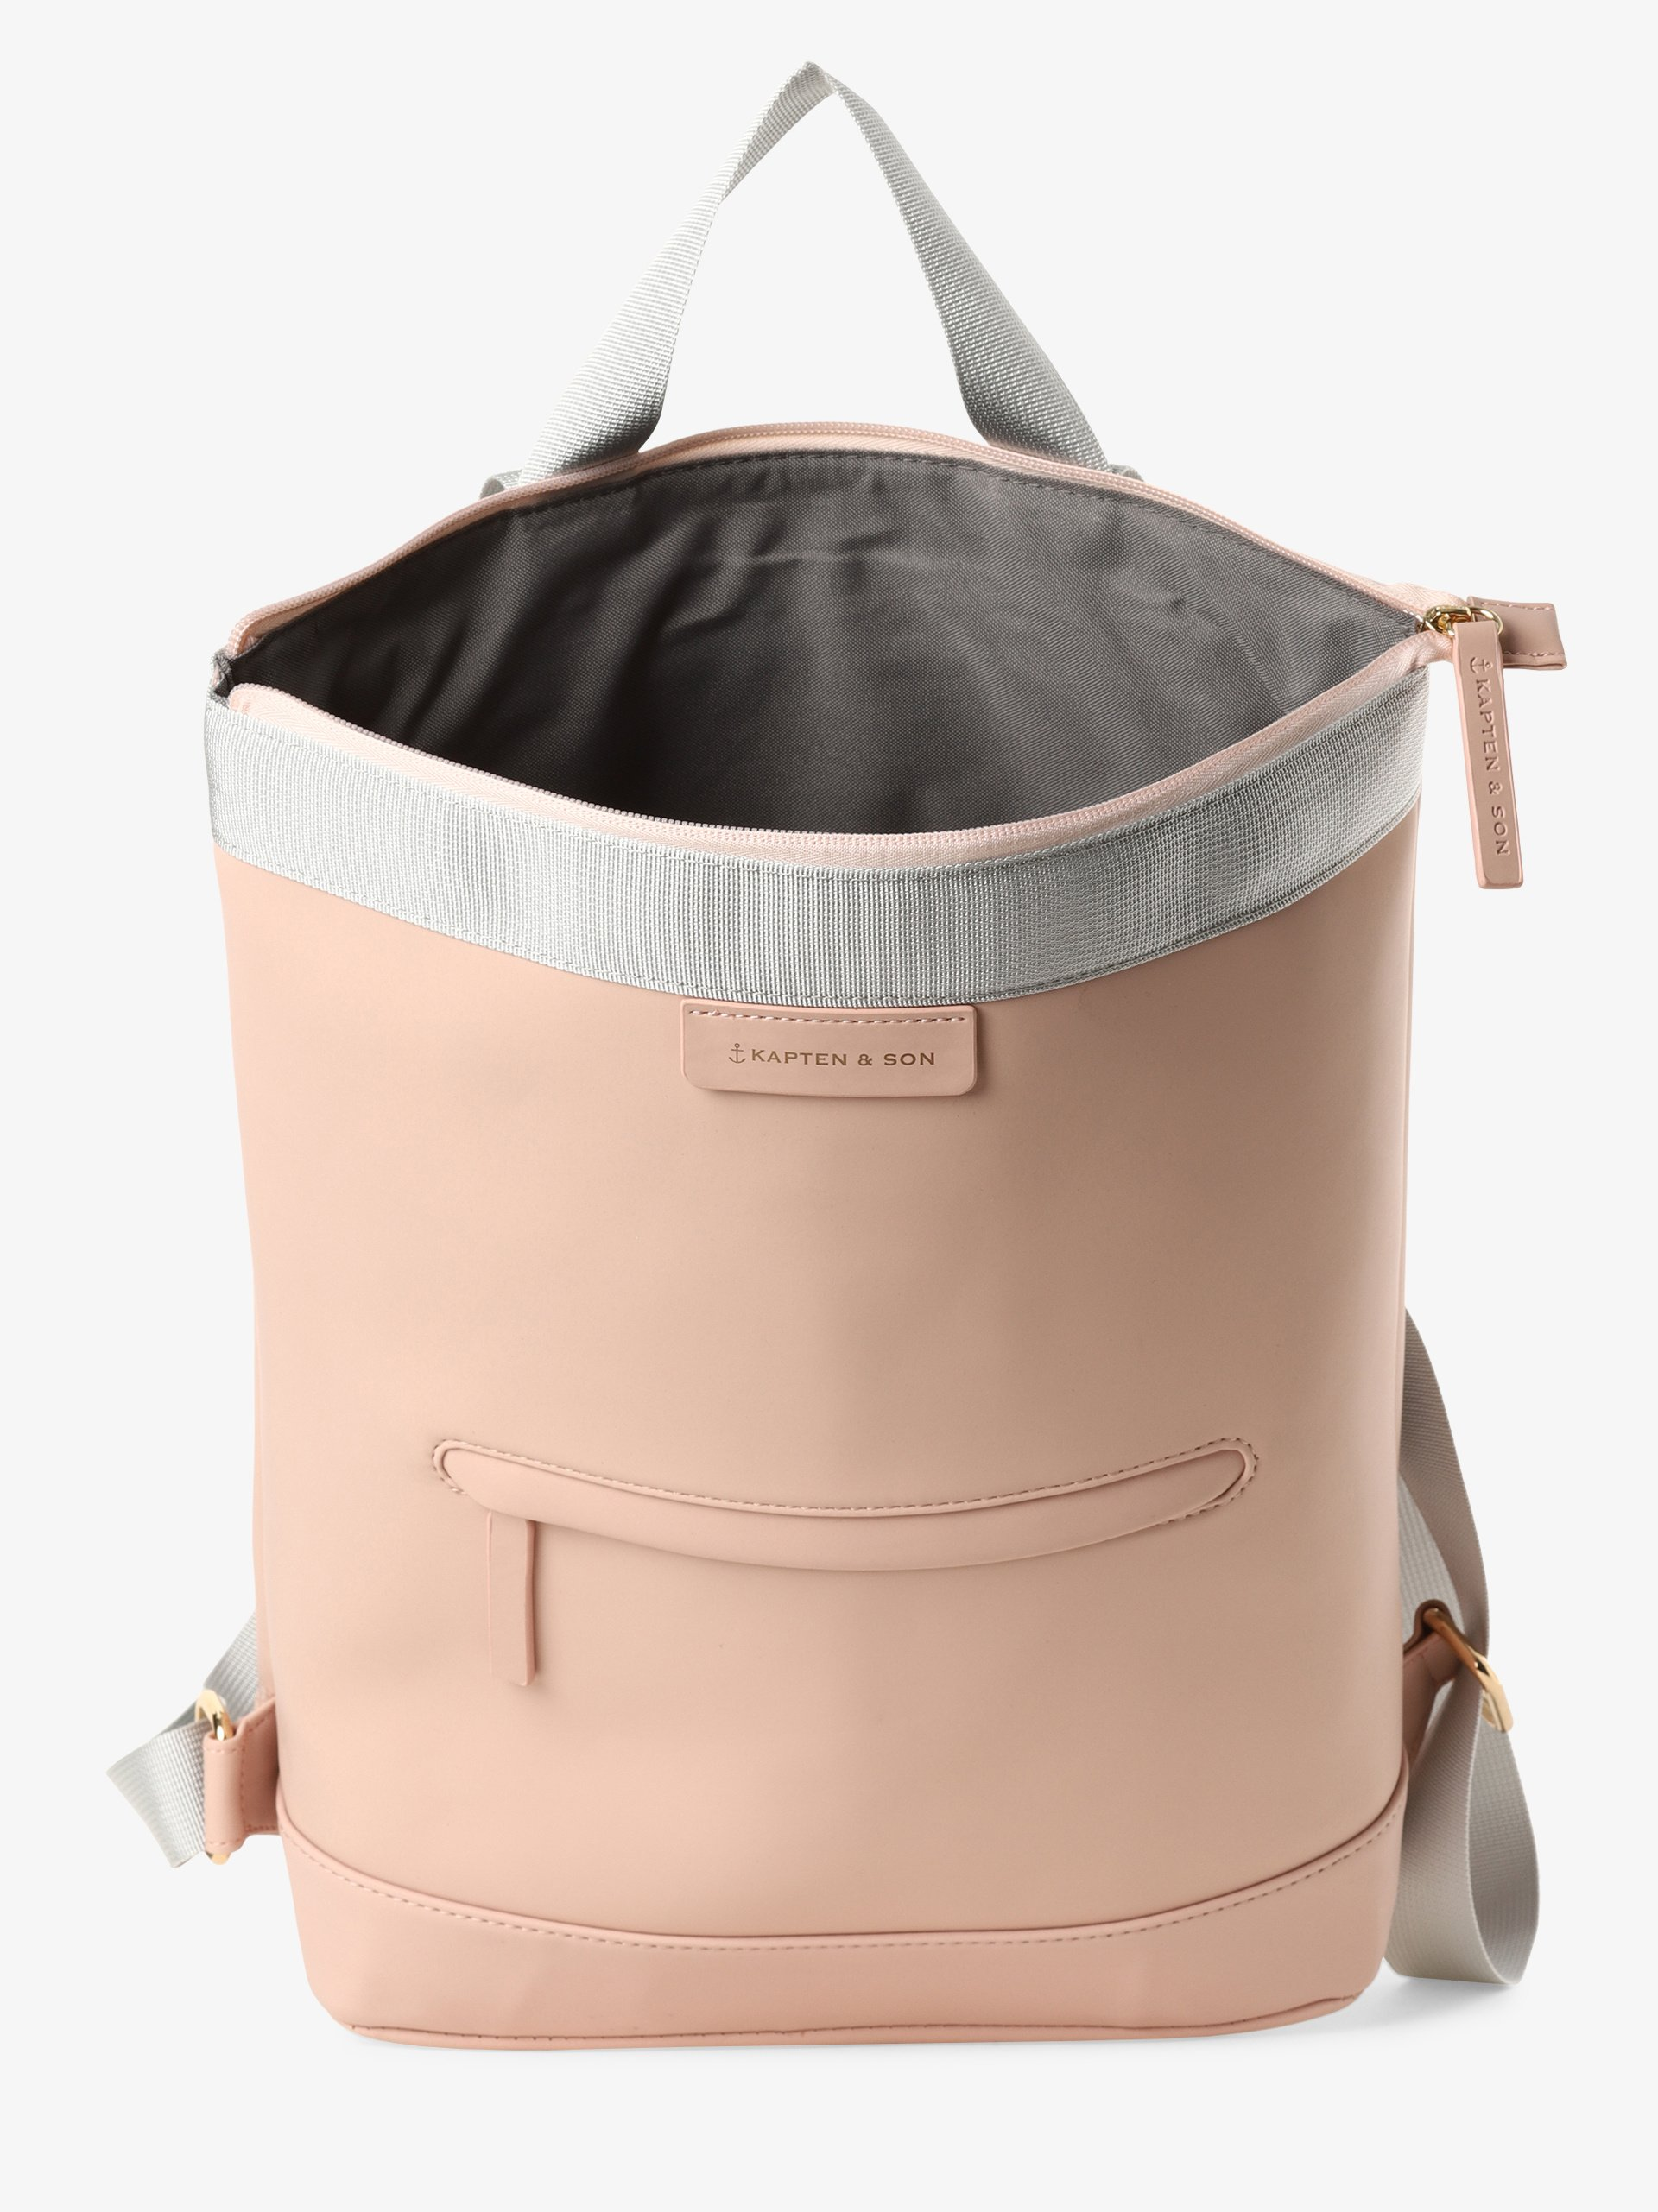 Kapten and Son Damen Rucksack